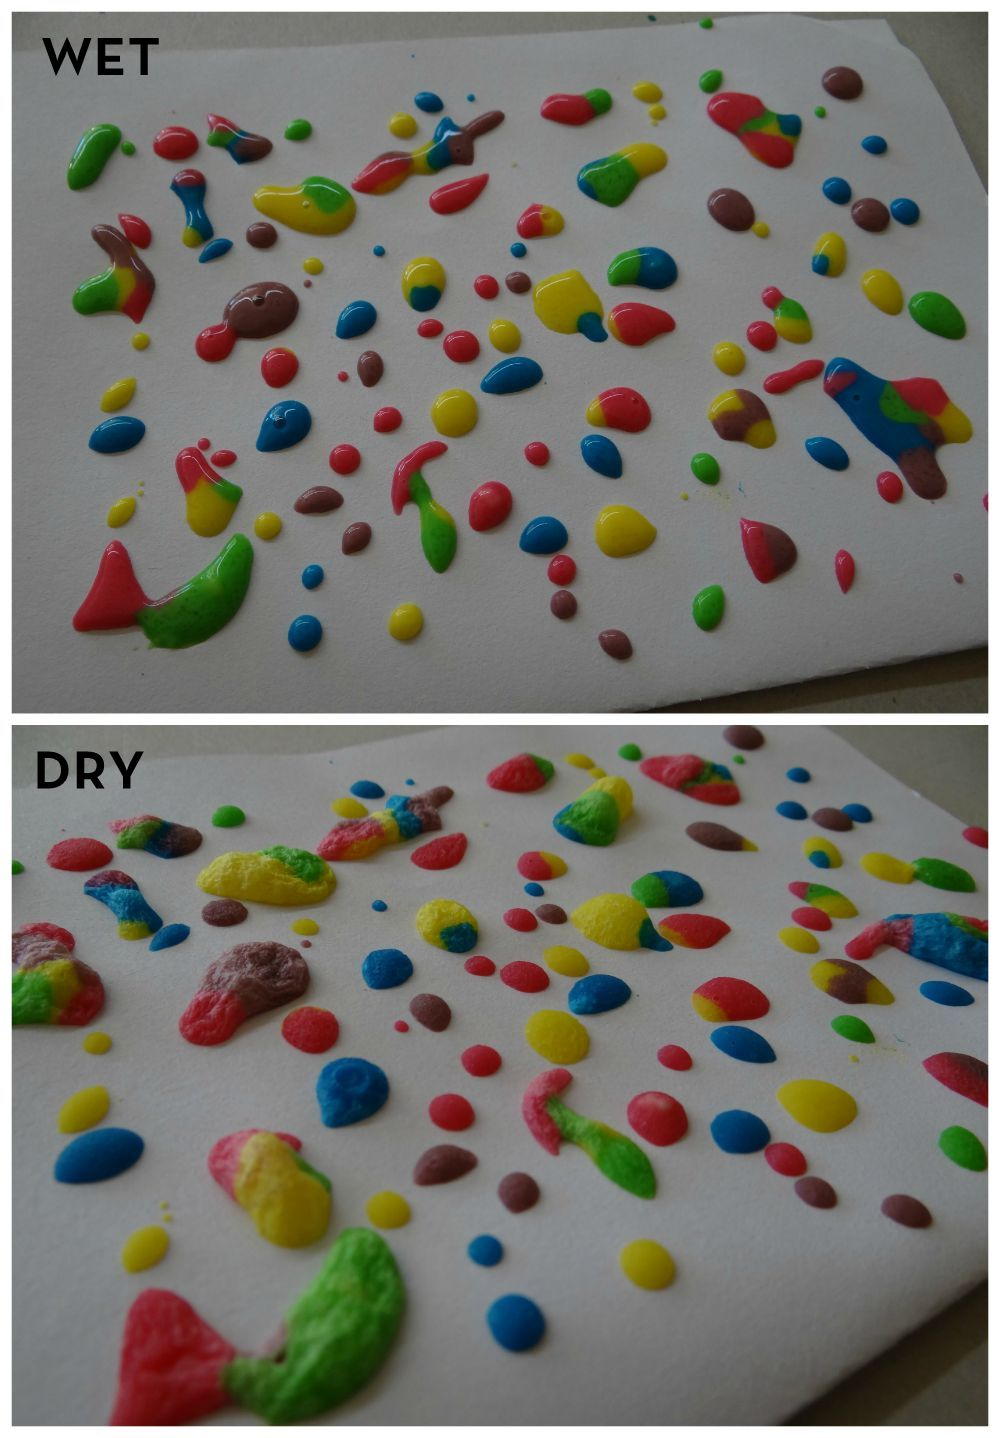 Puff Paint - Wet vs Dry